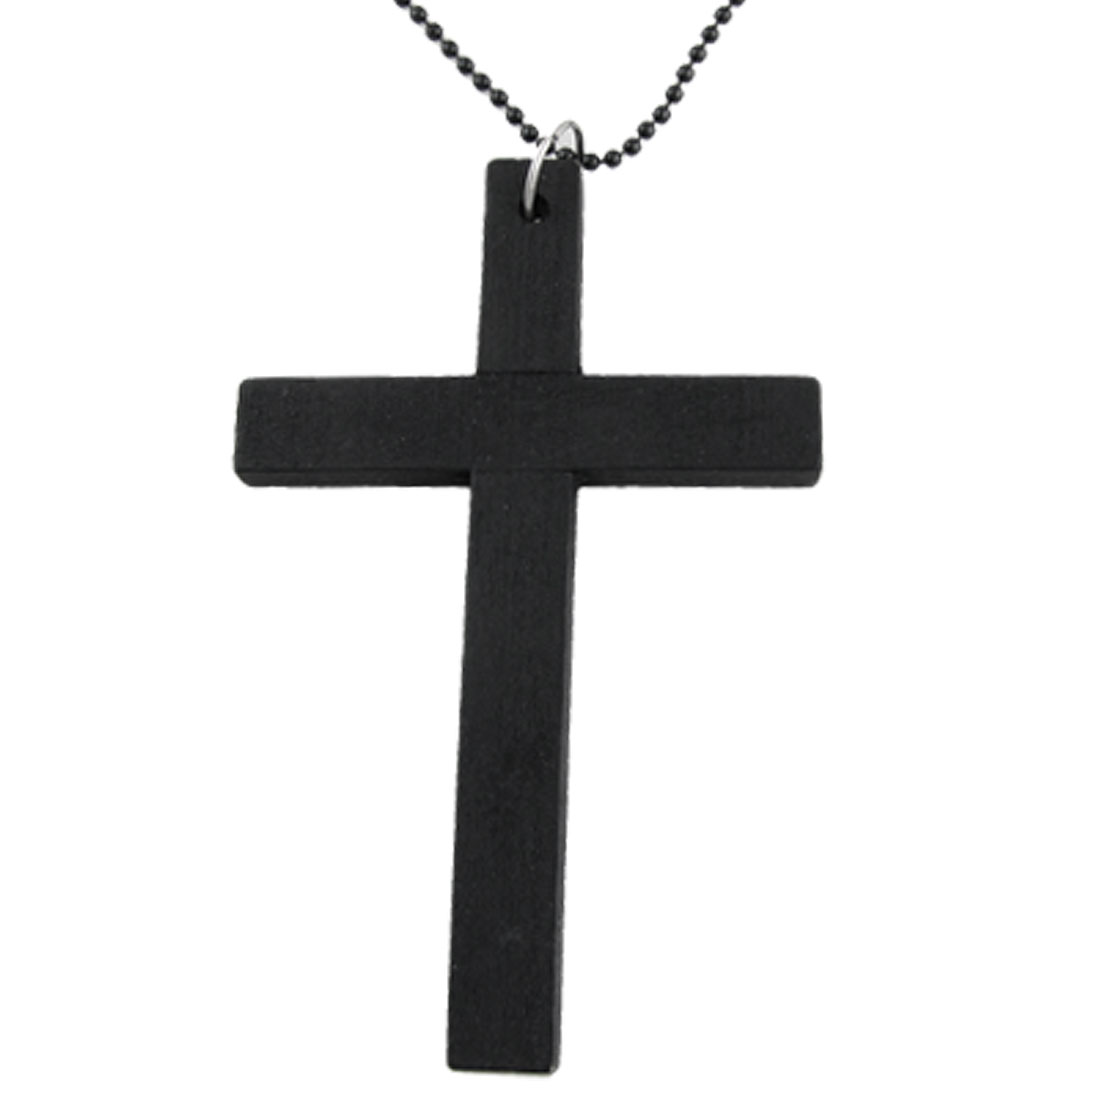 Long Metal Beaded Chain Wooden Cross Pendant Necklace Black